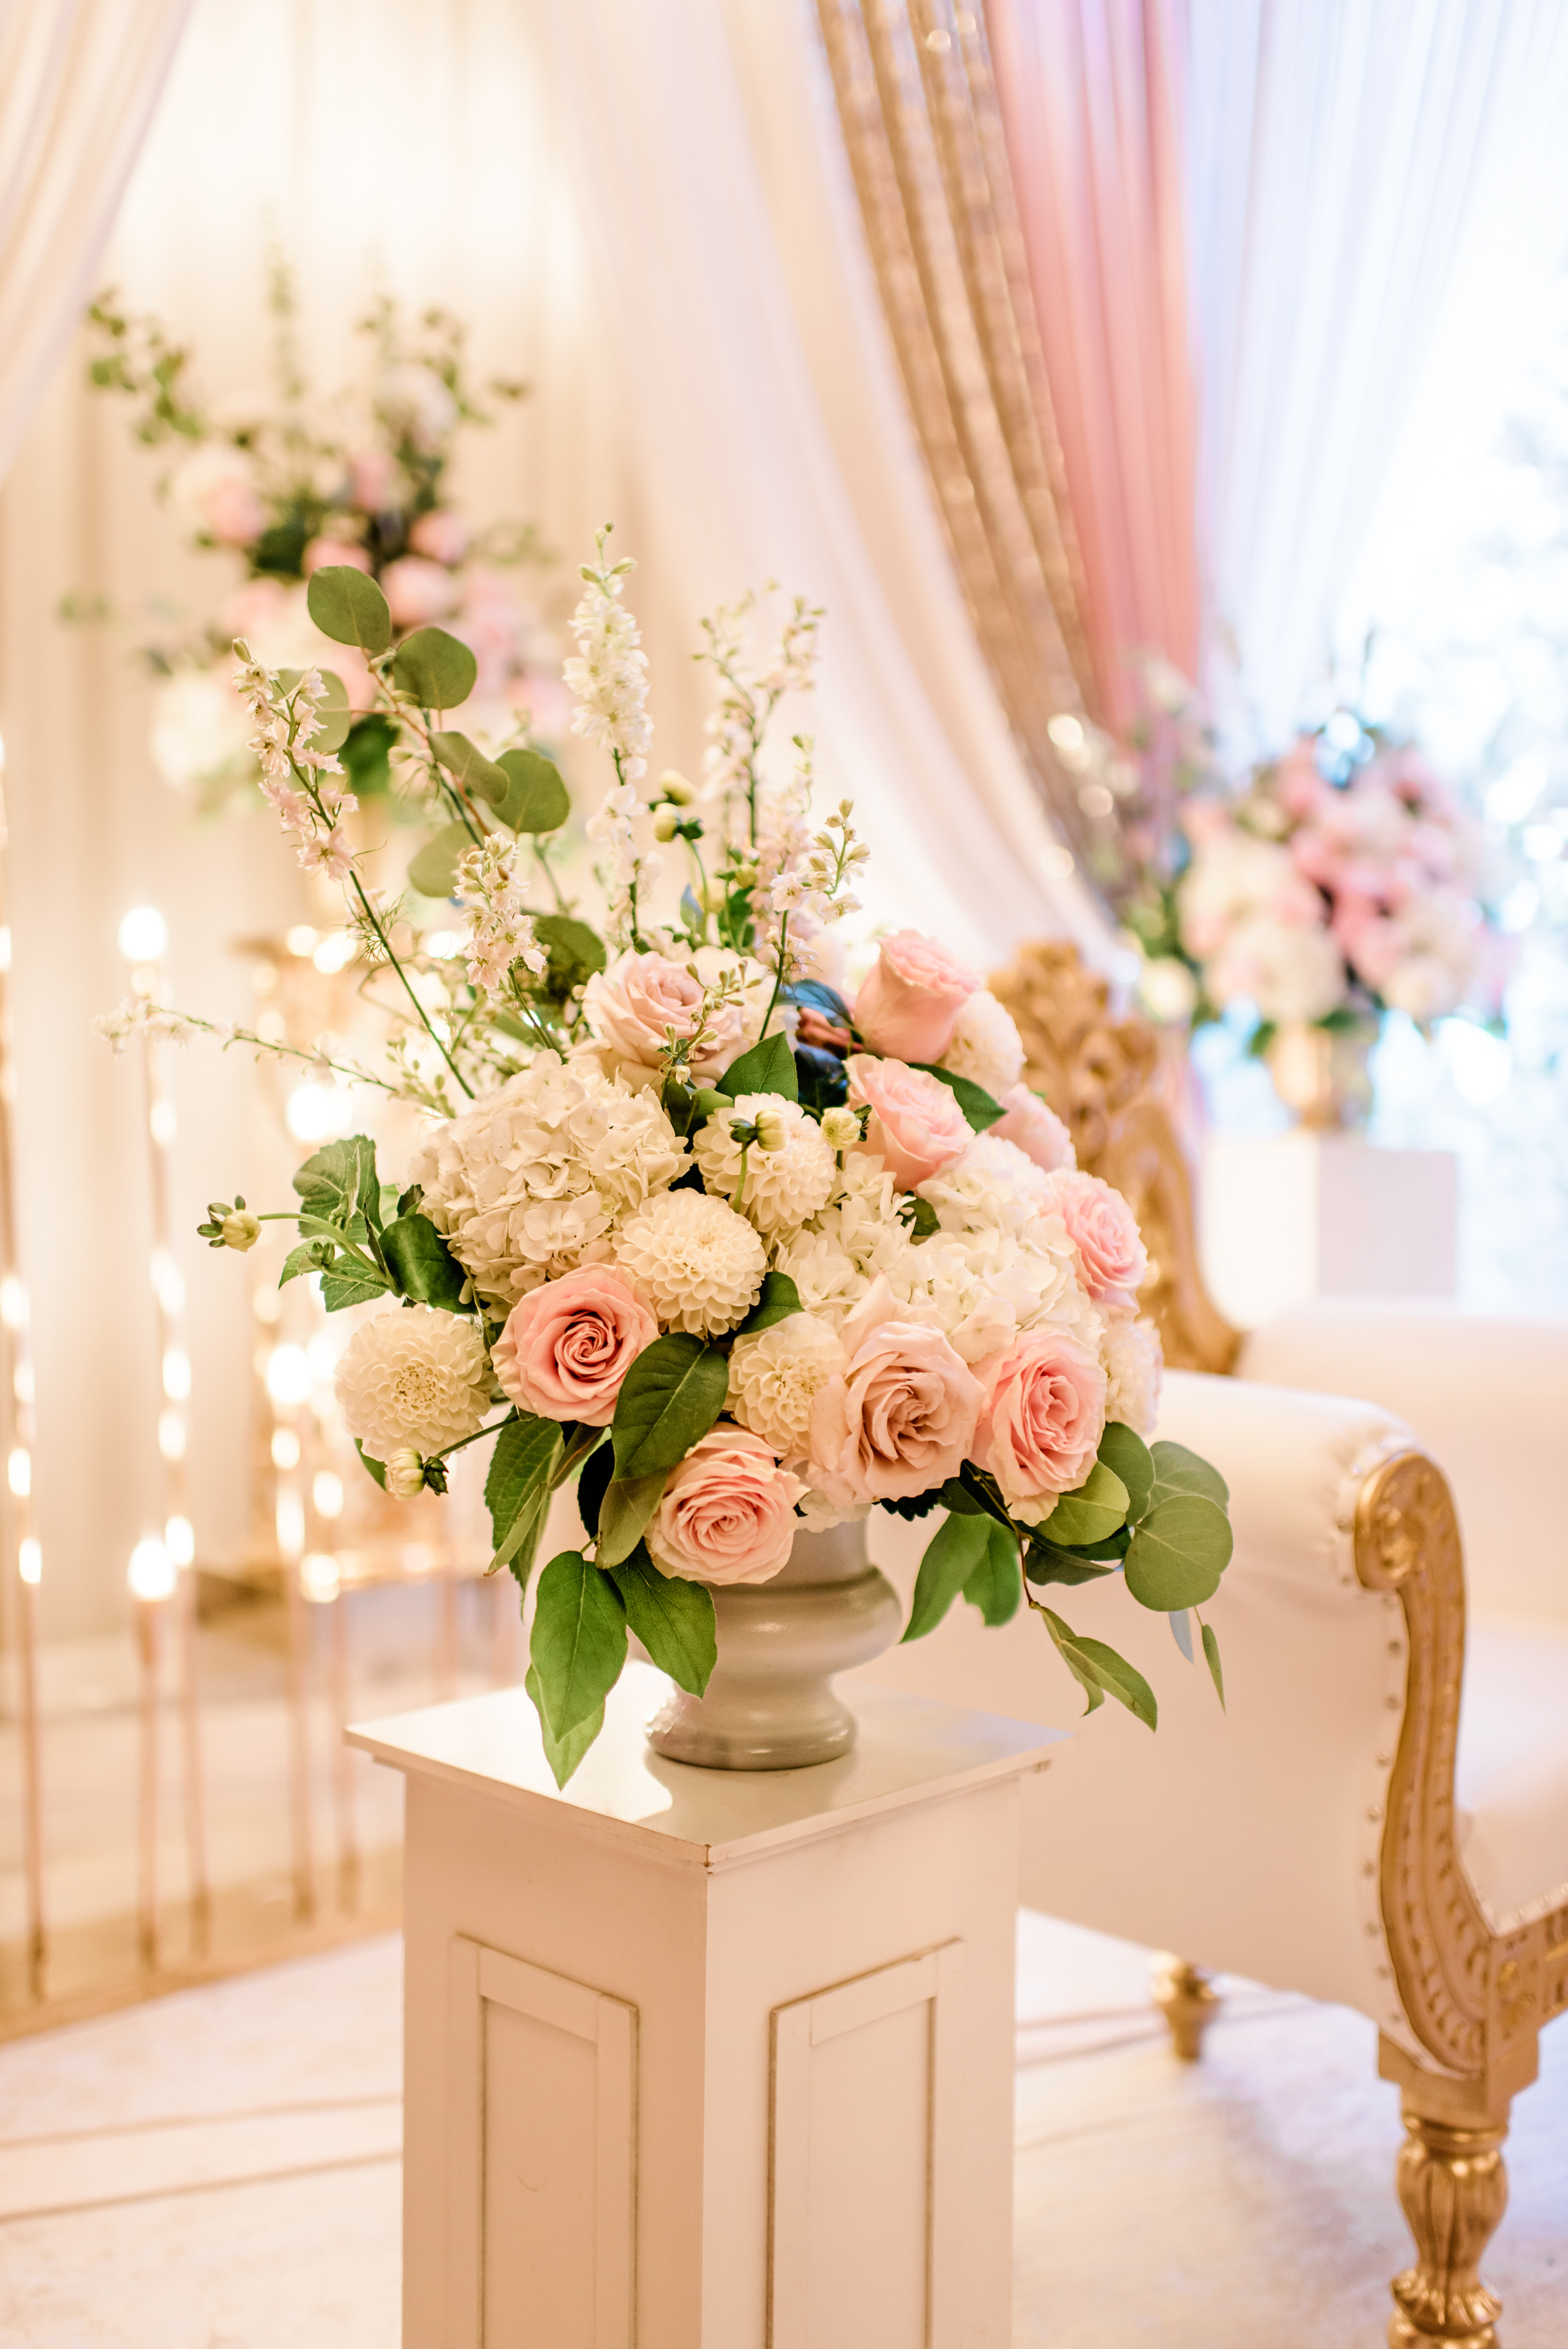 Pink on pink roses drapes and loveseat - photo by Alante Photography